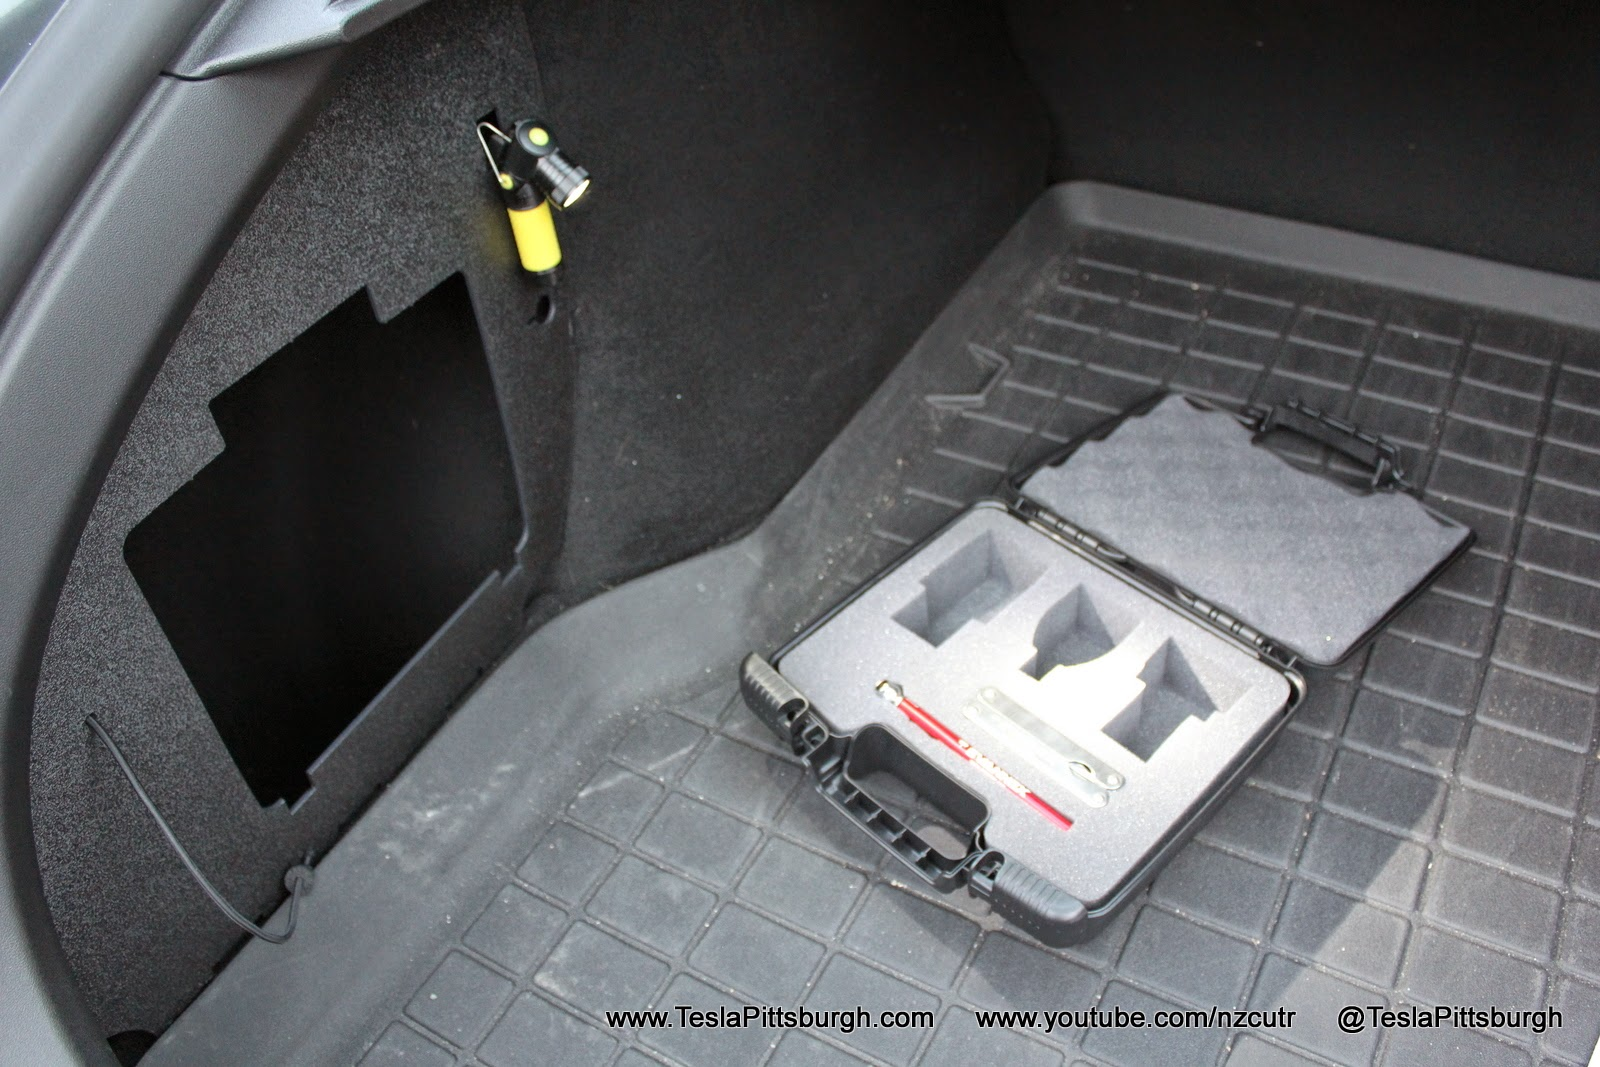 Model-S-Charge-Adapter-Lighting-Case-18